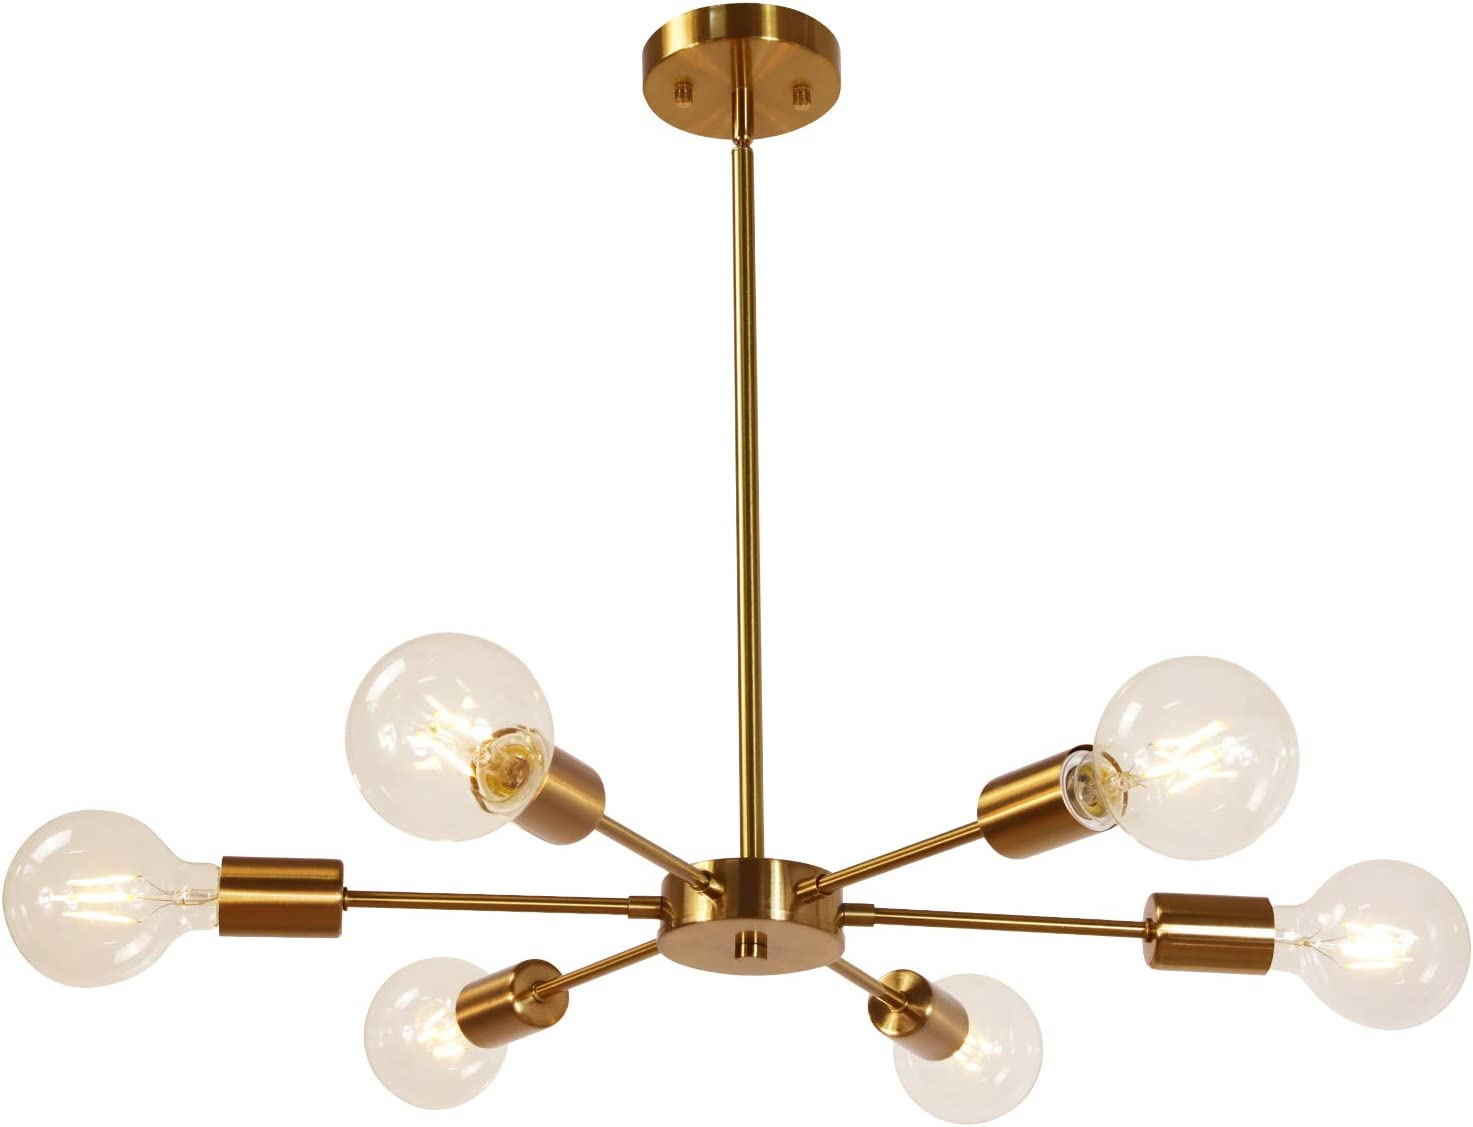 MELUCEE Modern Sputnik Chandelier 6 Lights Brass Chandelier Semi Flush Mount Ceiling Light Mid Century Pendant Light for Bedroom Foyer Dining Room Restaurant UL Listed